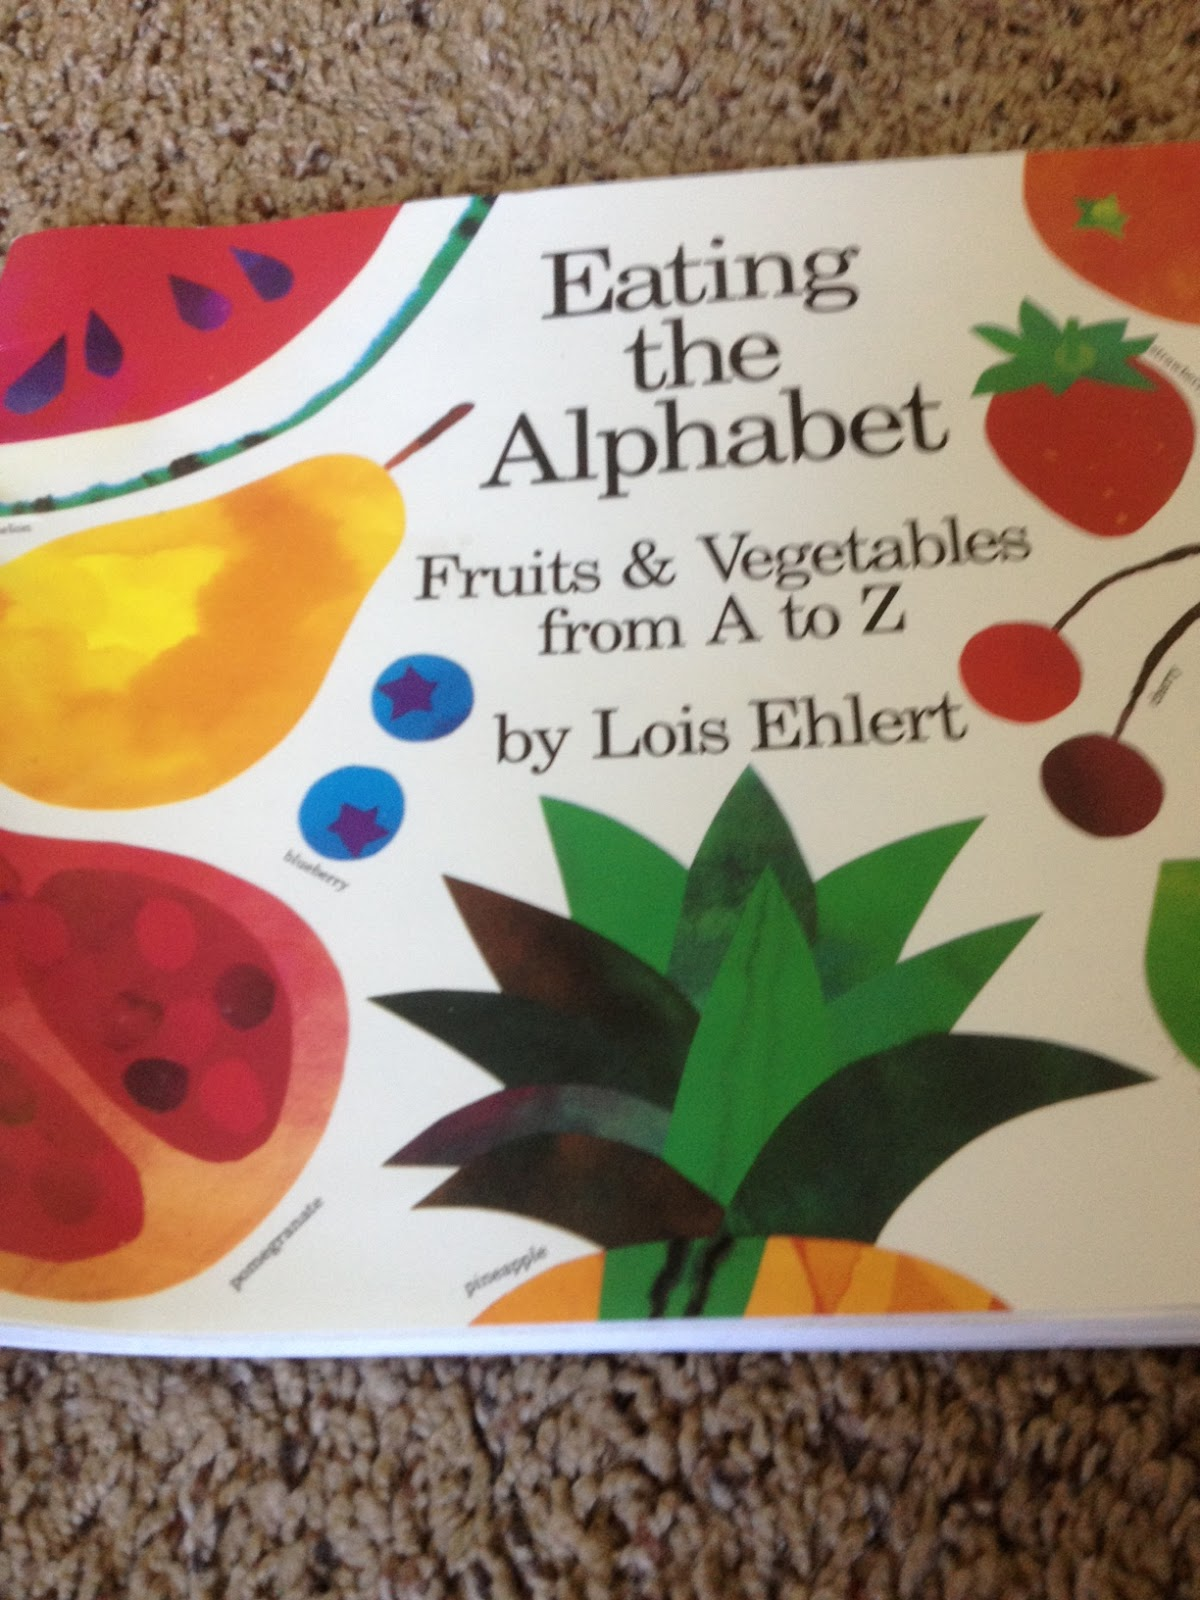 Zucchini Summer Picnic Theme Lois Ehlert S Eating The